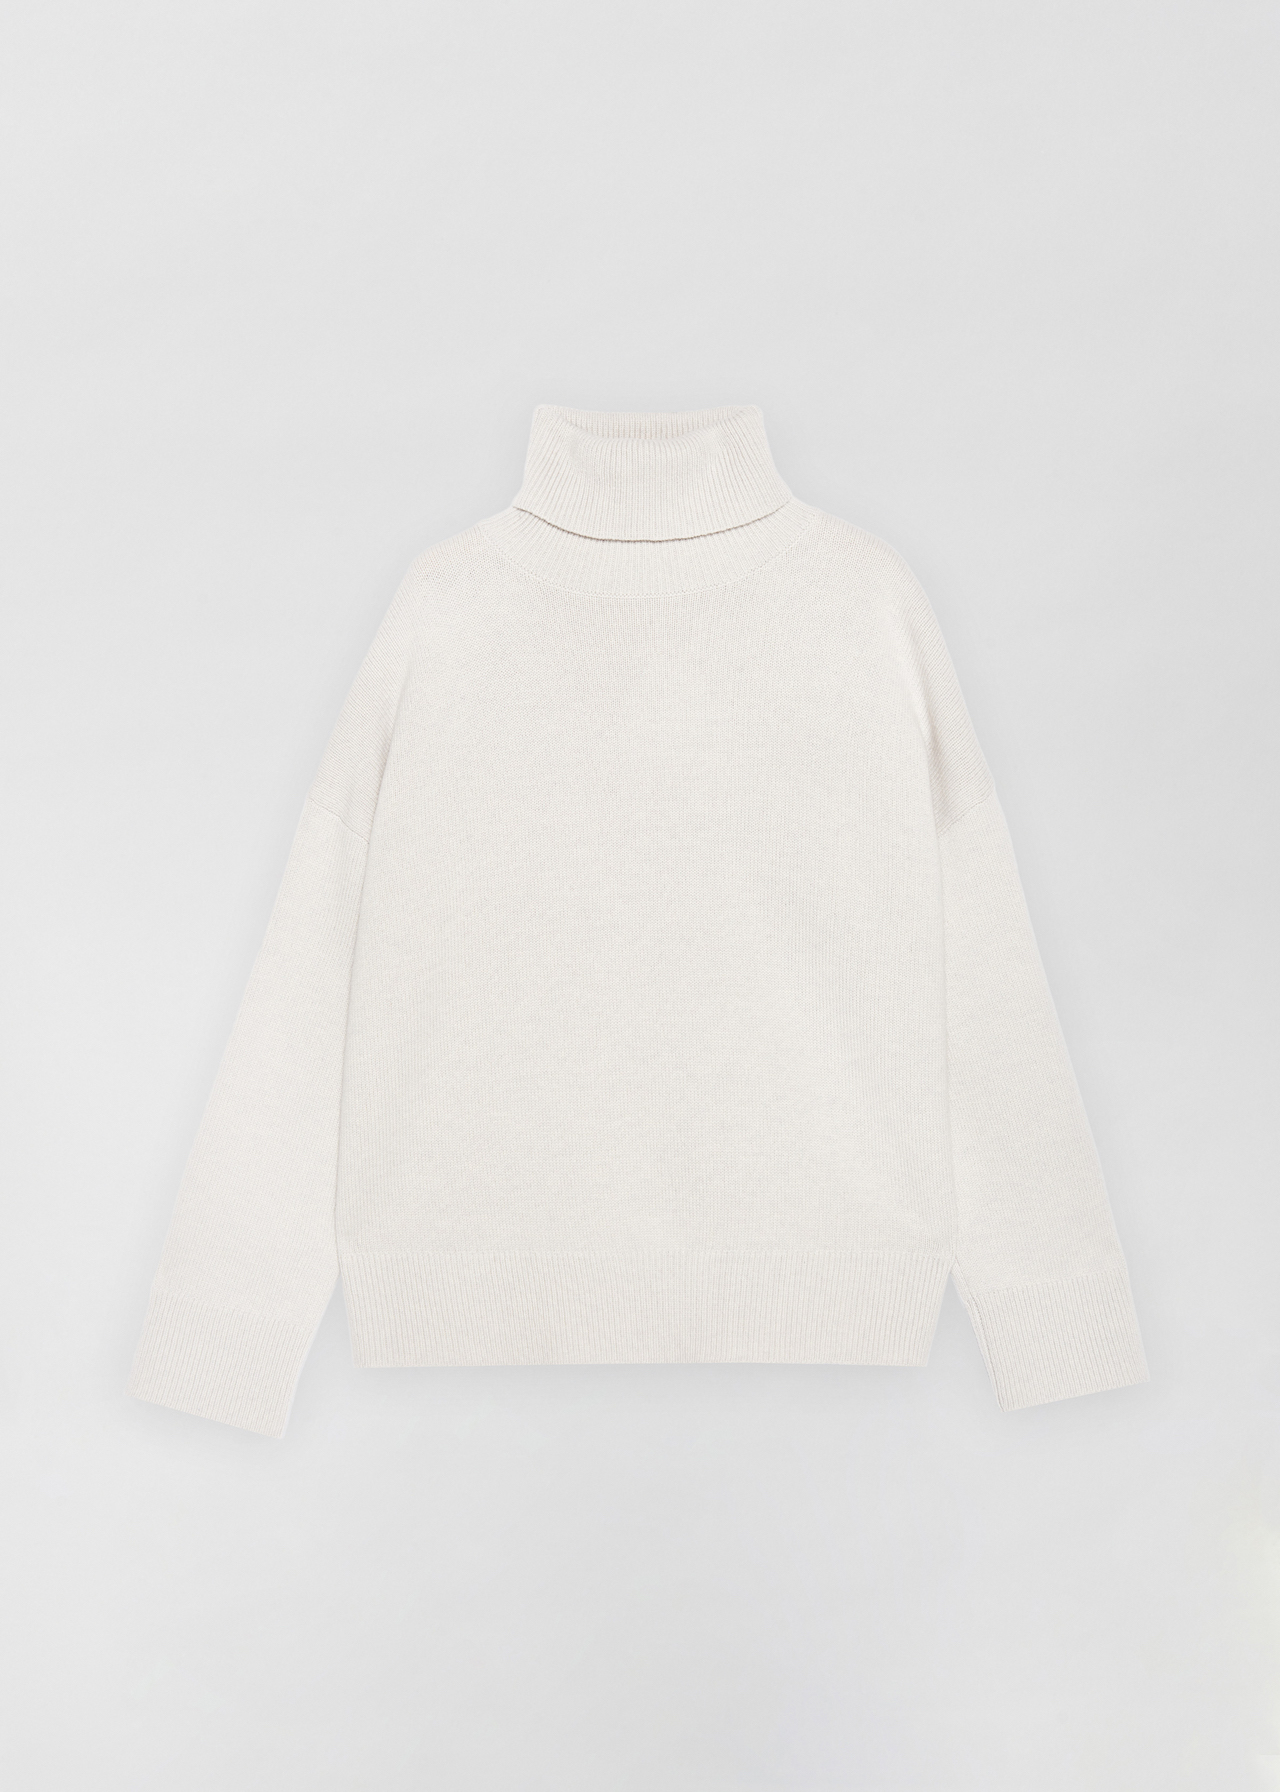 Boxy Turtleneck Sweater - Ivory in Dove Grey by Co Collections